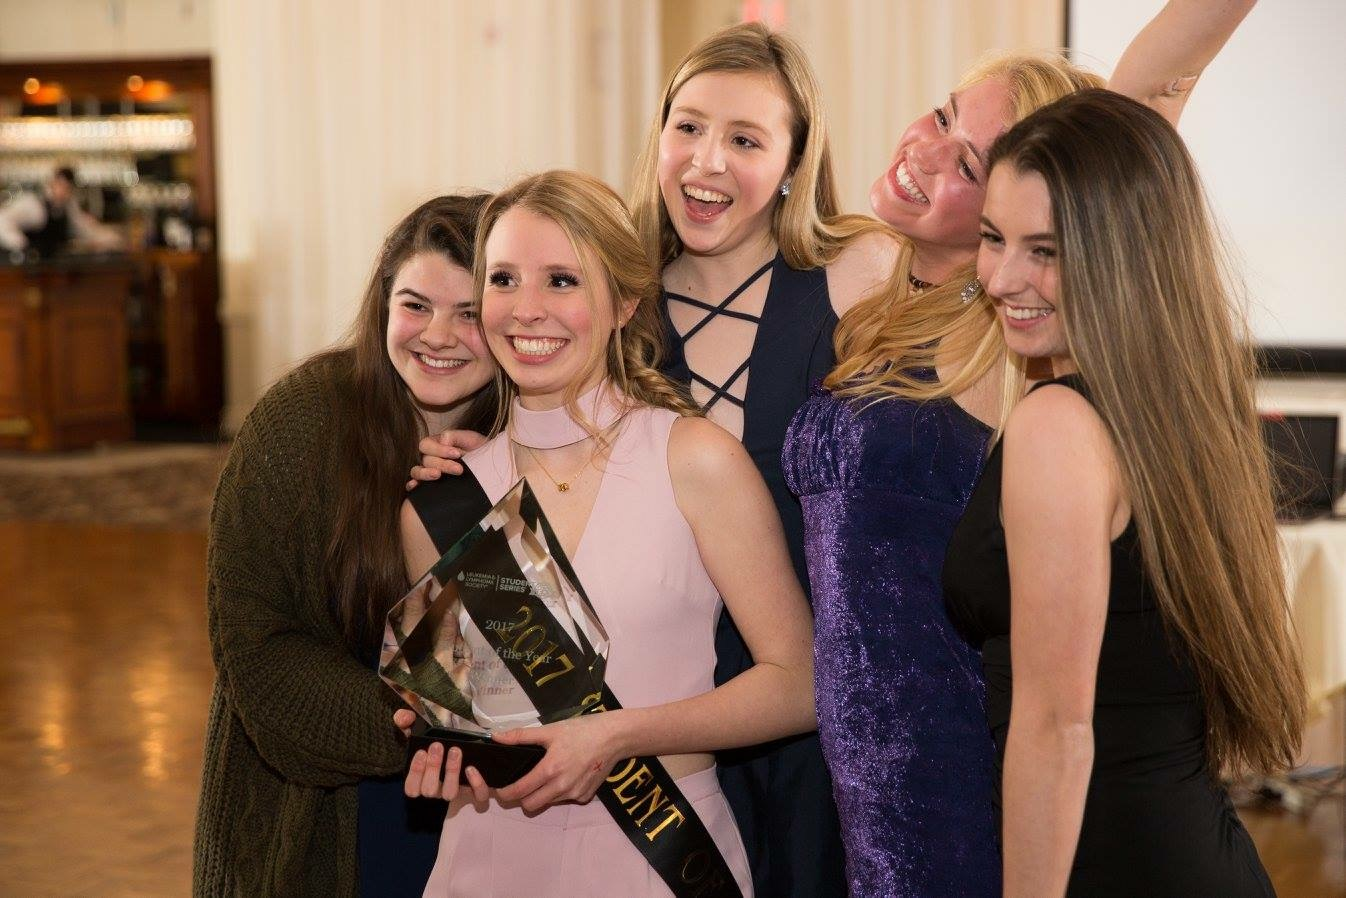 Junior Ali Hornung, center, is pictured with her younger sister, Brooke, and several of her friends at the LLS Awards Dinner on March 4.